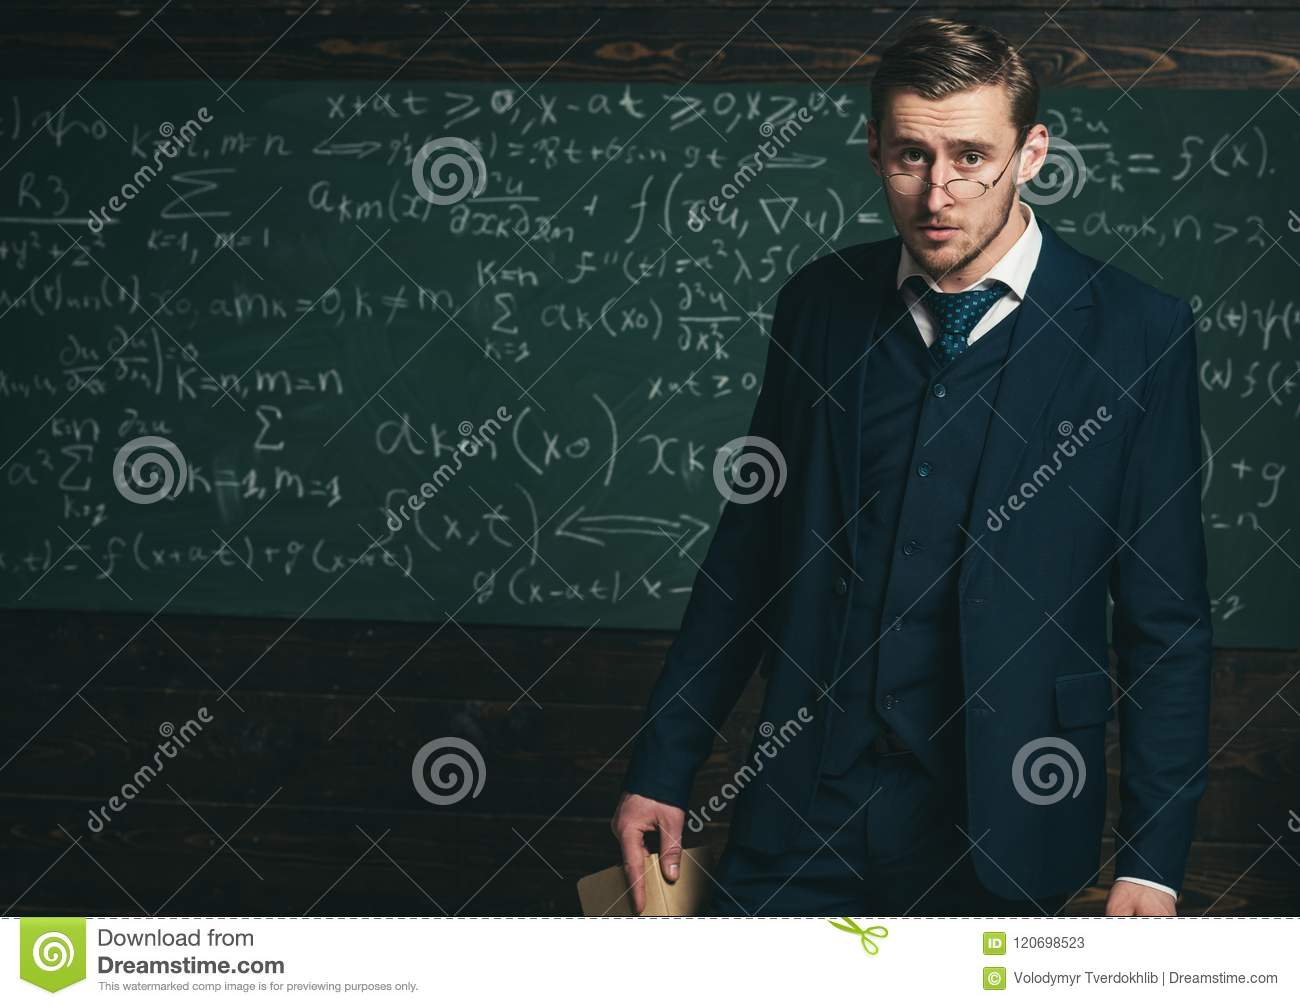 Exacting teacher. Man with high expectations looks unsatisfied with students knowledge. Professor exacting and strict